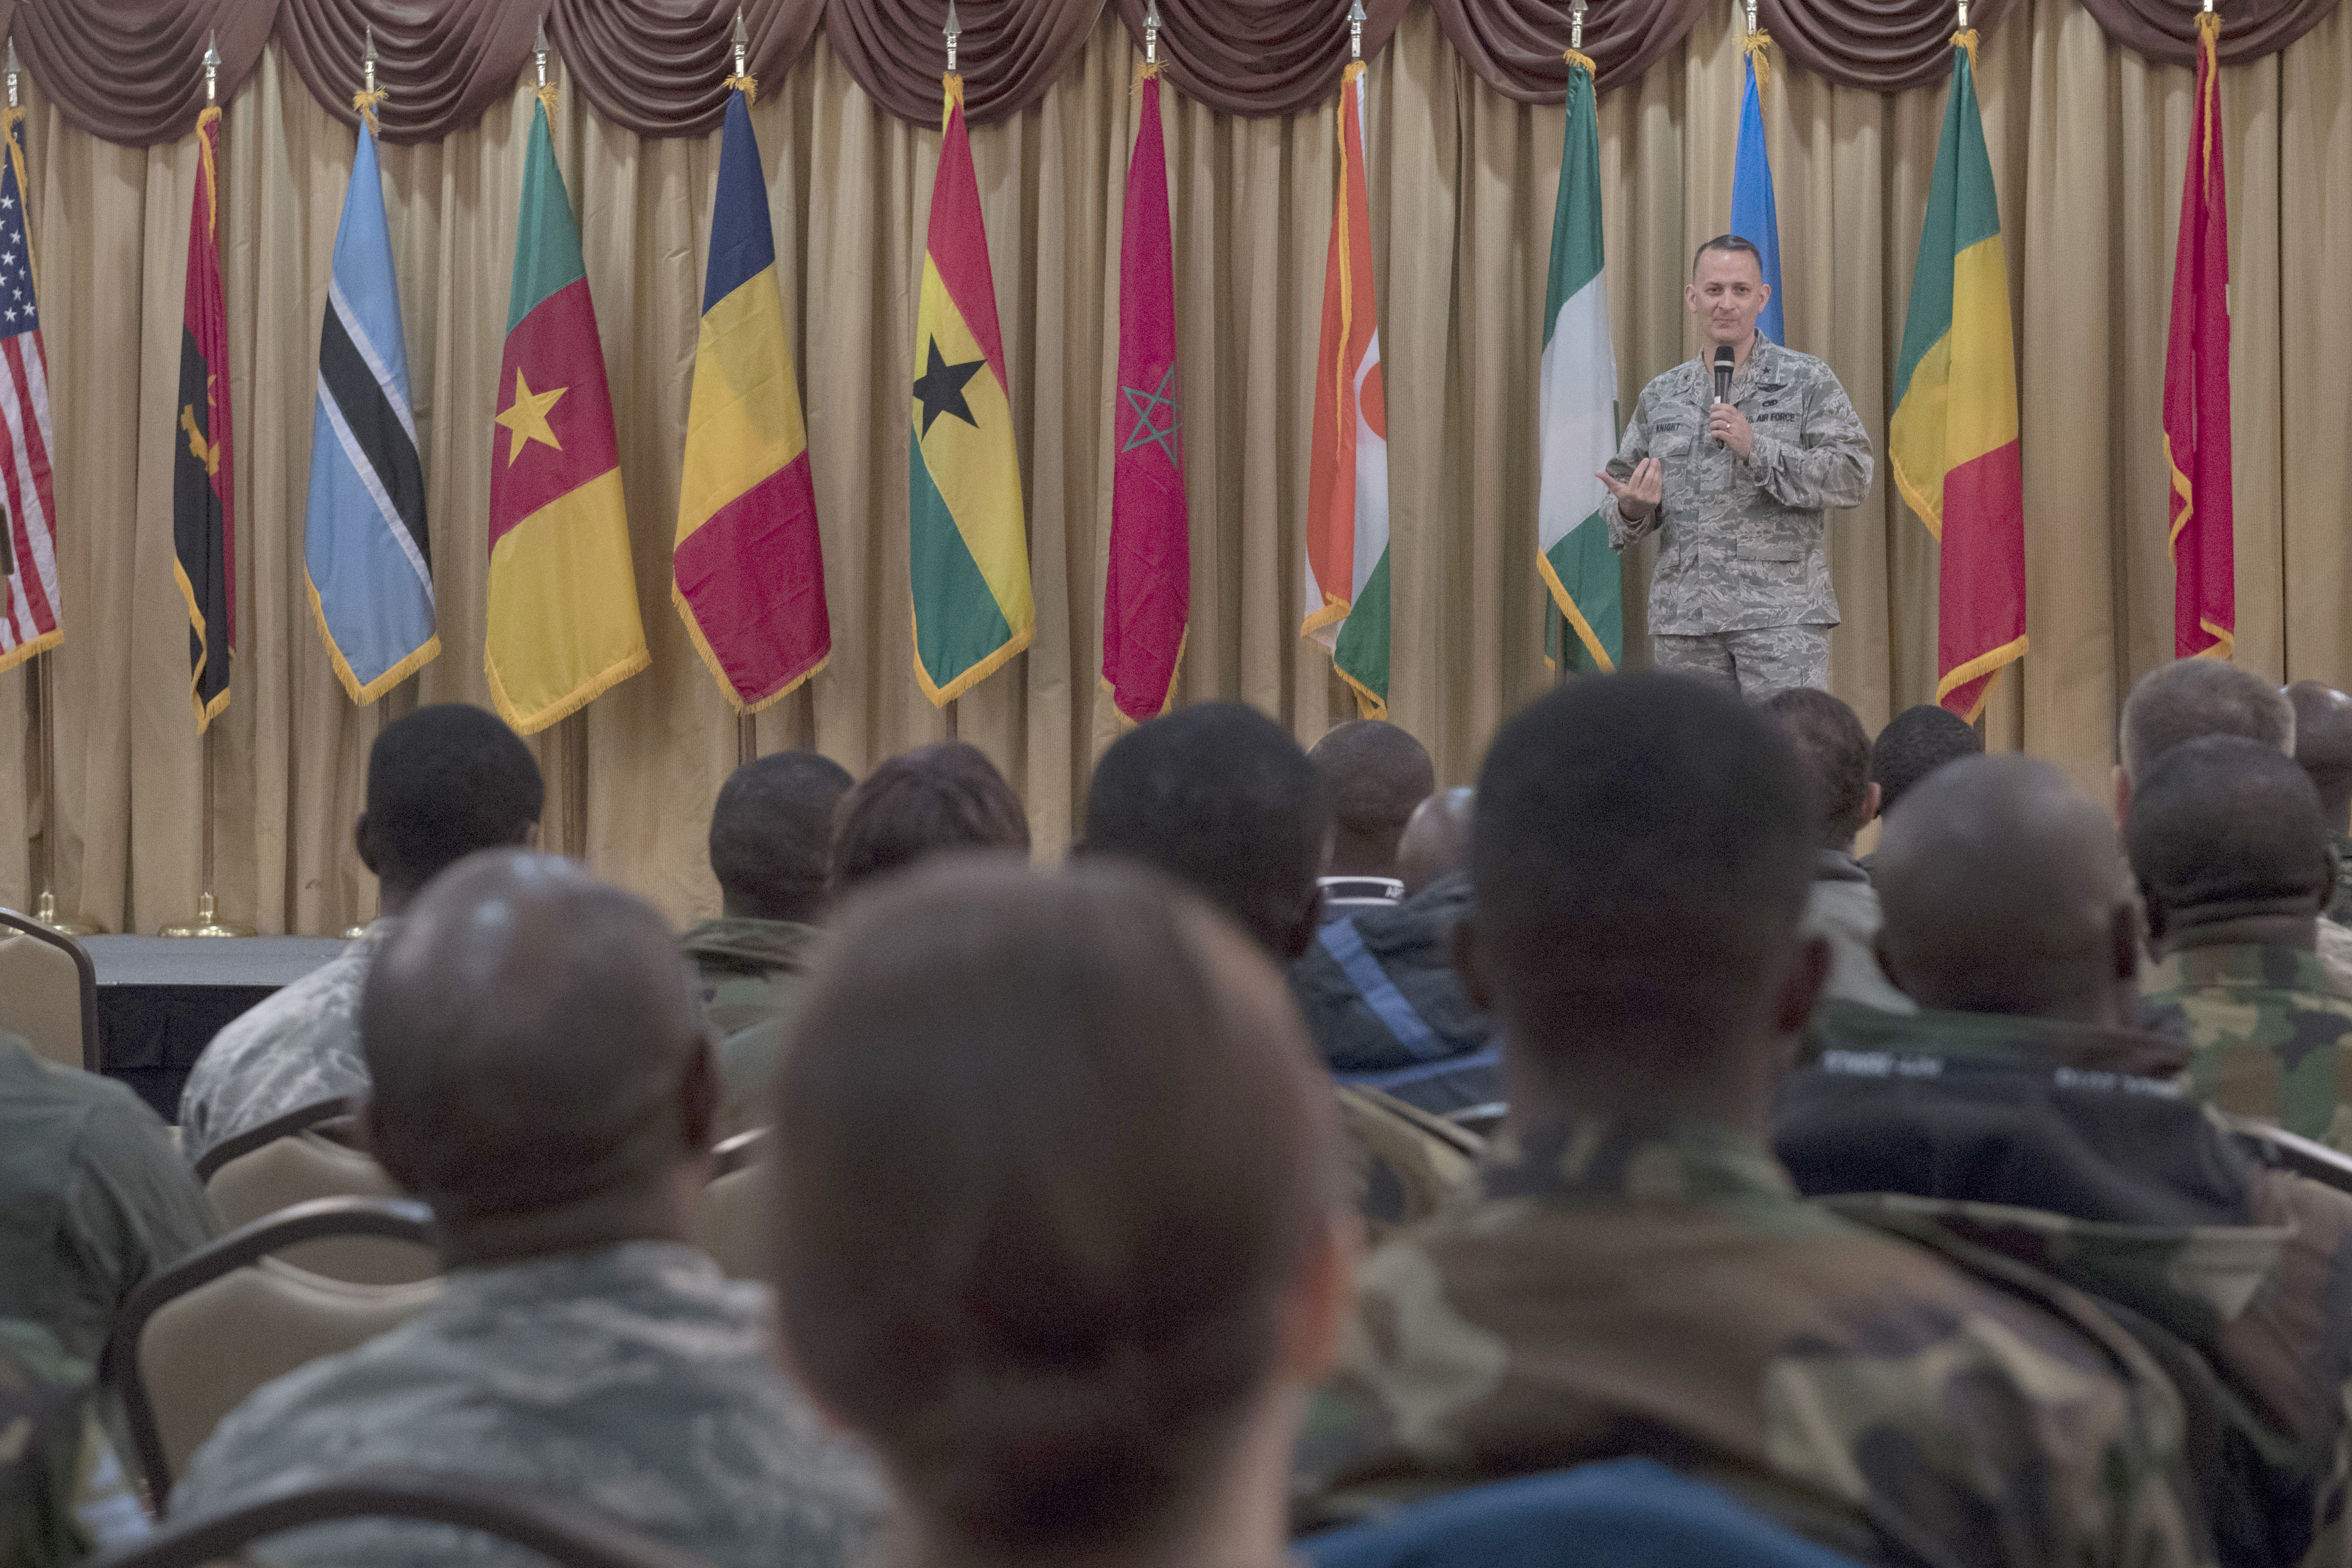 Brig. Gen. William Knight, U.S. Air Force Expeditionary Center vice commander, speaks during the opening ceremony of the African Partnership Flight at Joint Base McGuire-Dix-Lakehurst, N.J., April 16, 2018. Thirteen African countries participated in the week-long engagement. (U.S. Air Force photo by Tech. Sgt. Gustavo Gonzalez)